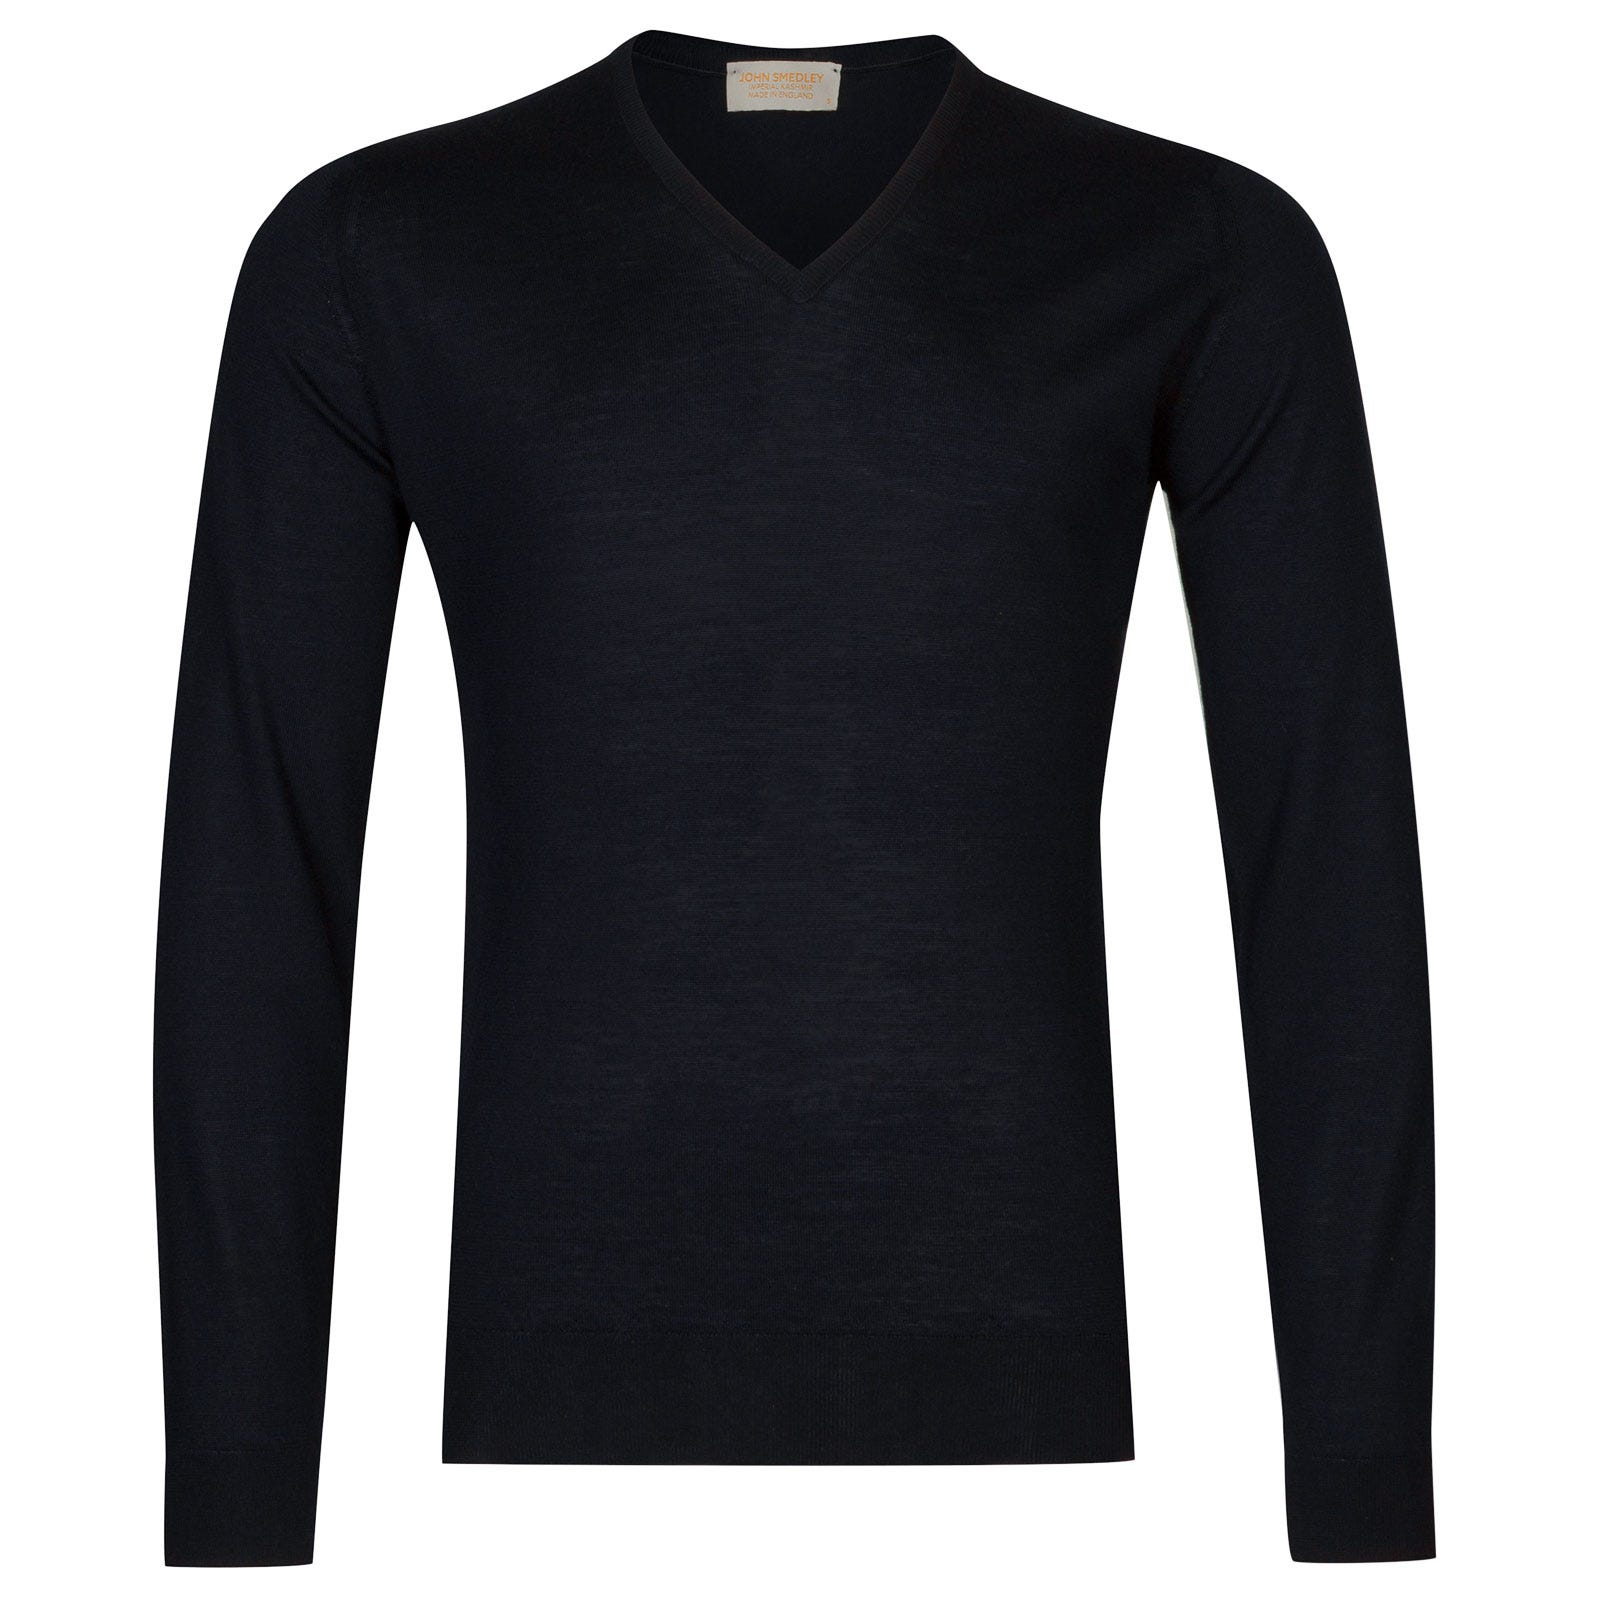 John Smedley newark Merino Wool and Cashmere Pullover in Midnight-L